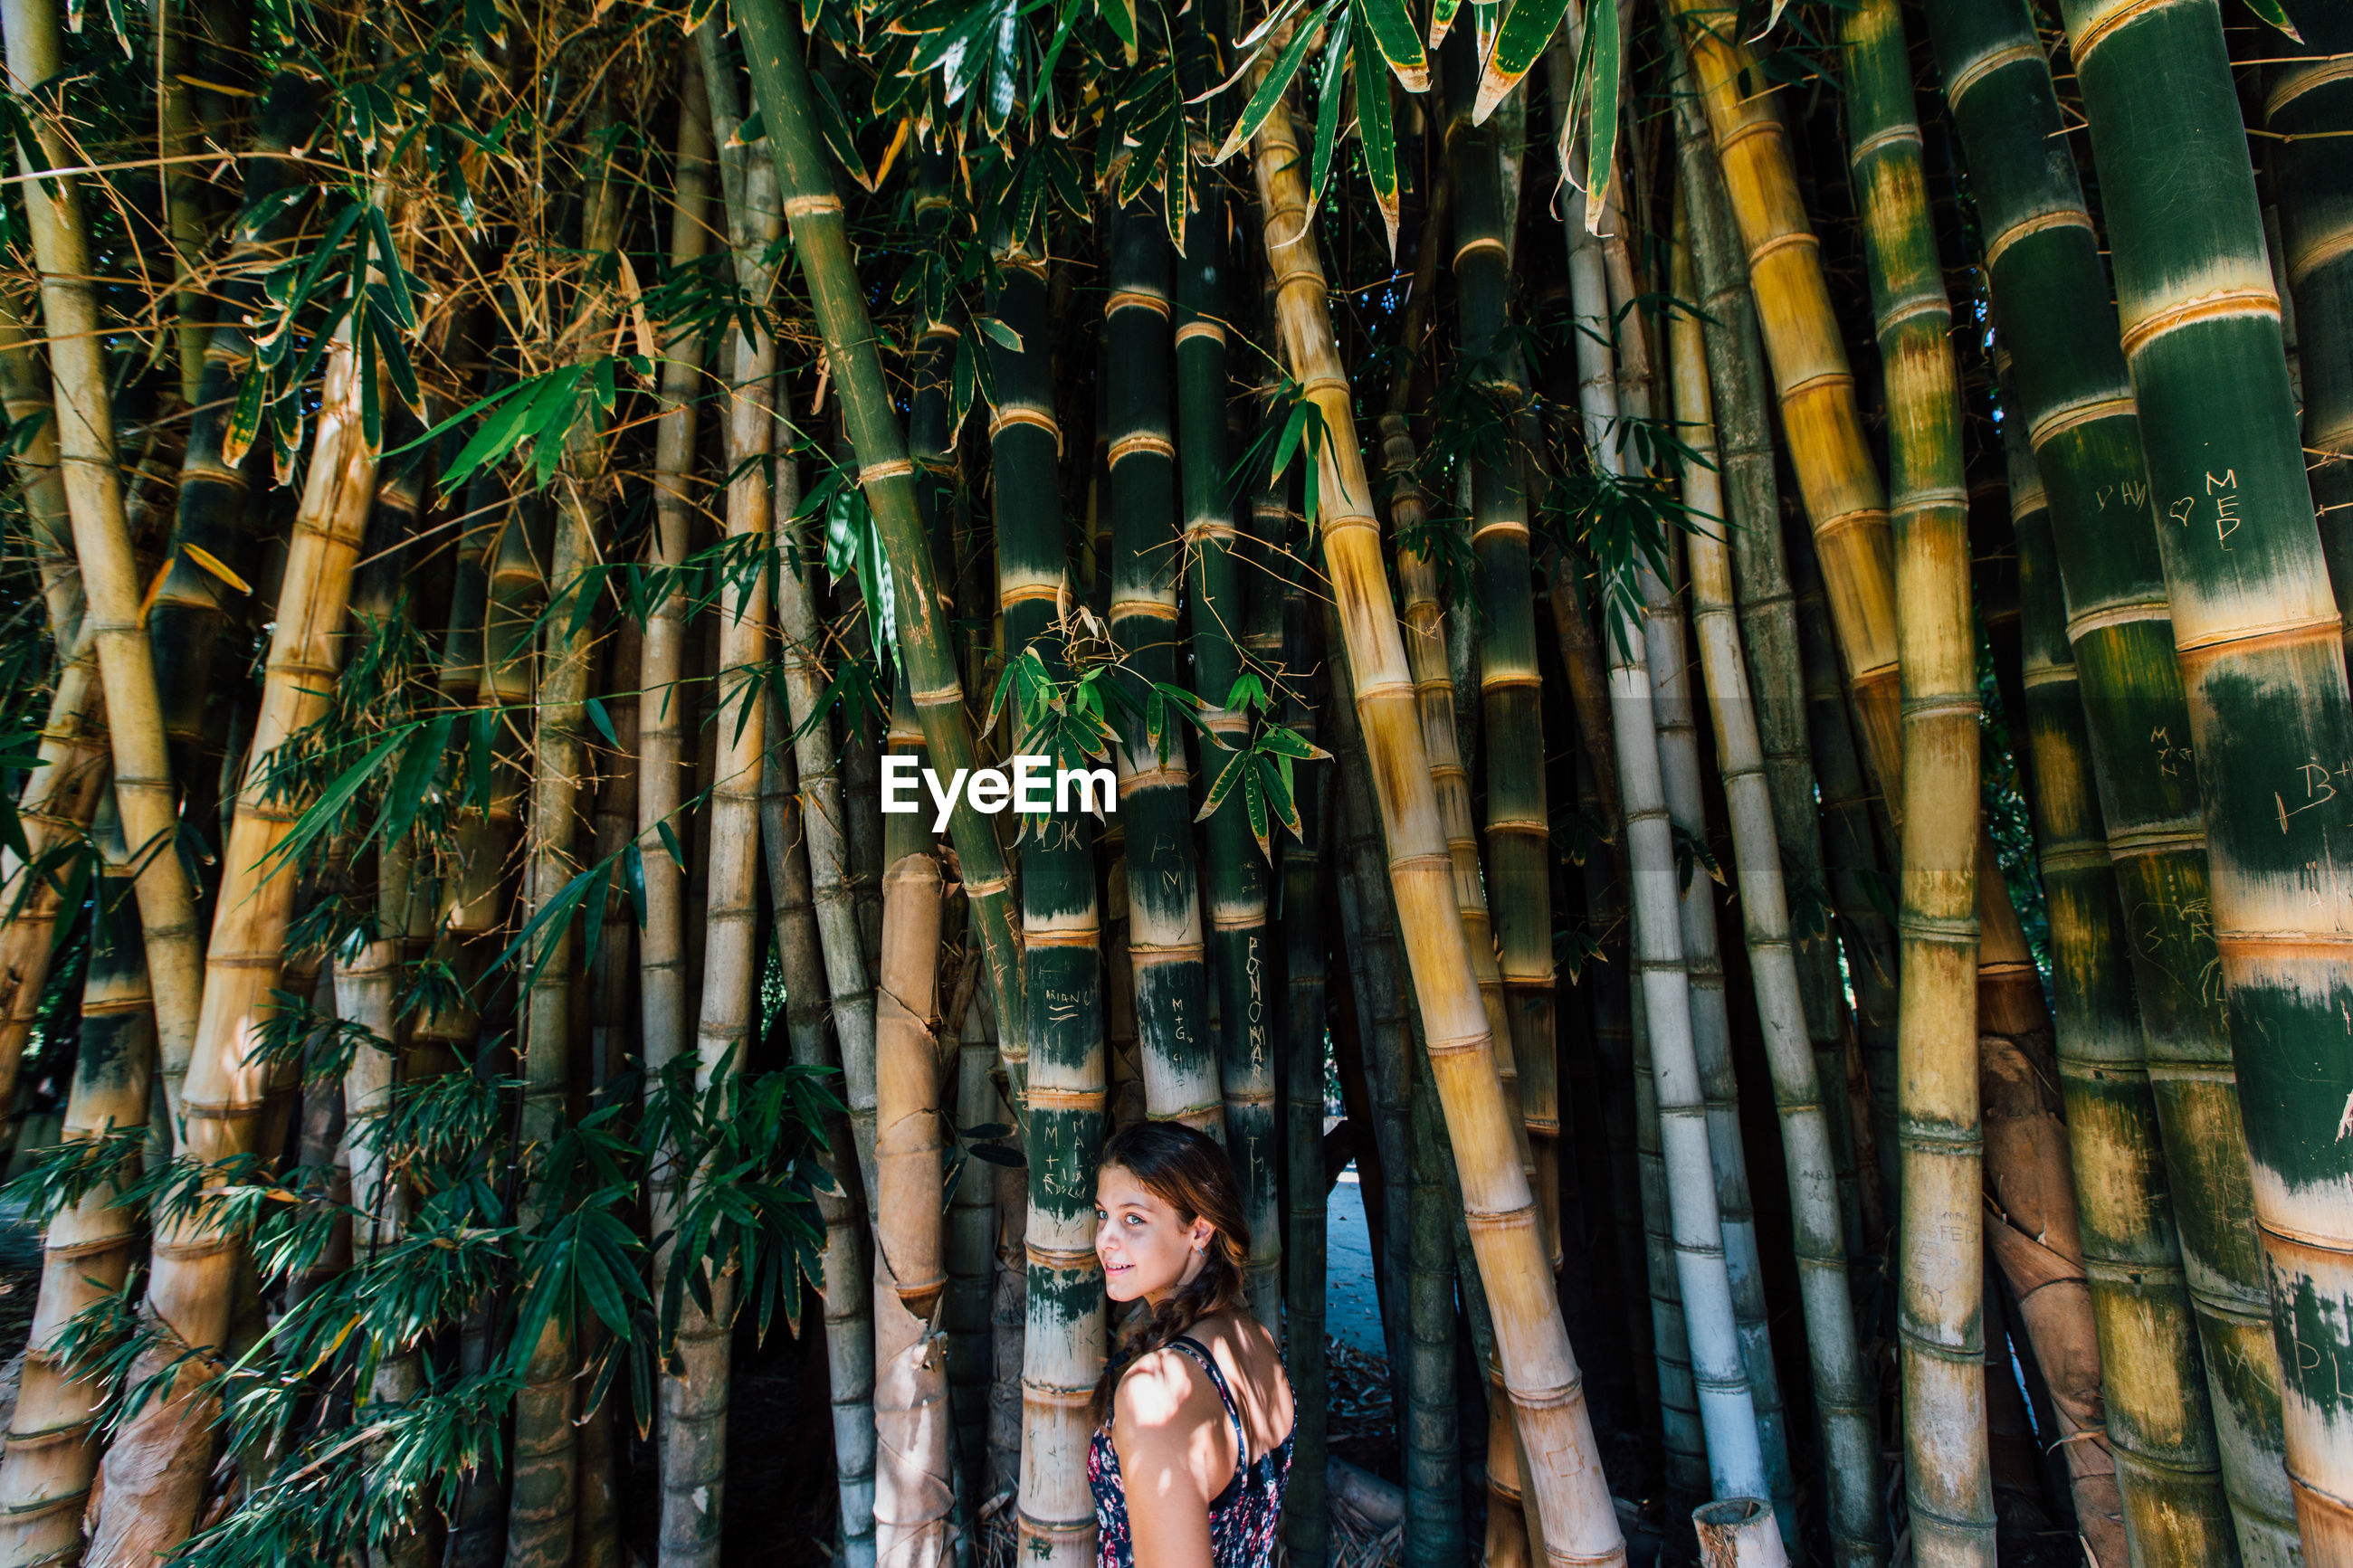 Girl standing by bamboo trees in forest